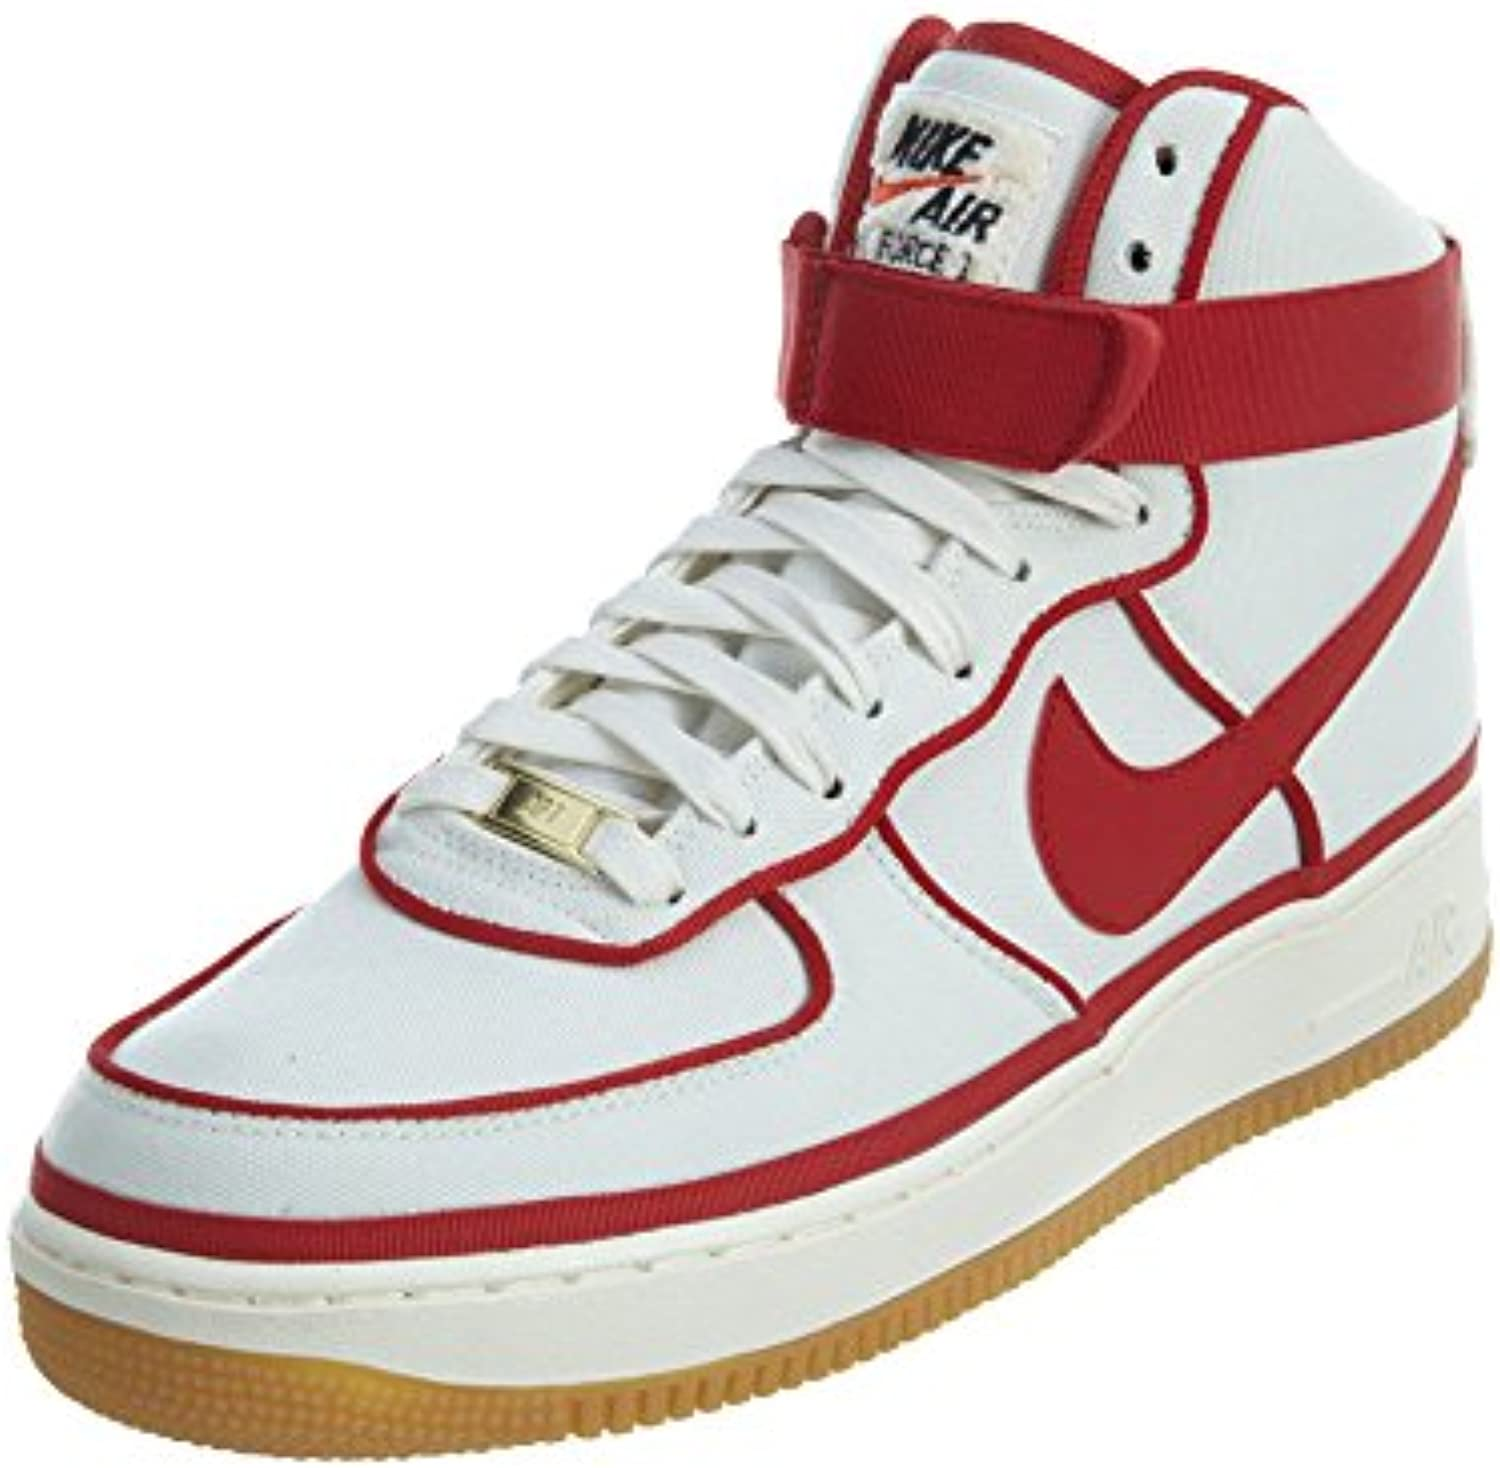 Nike Air Force 1 High '07 Lv8 Mens Style: 806403 101 Size: 8 M US